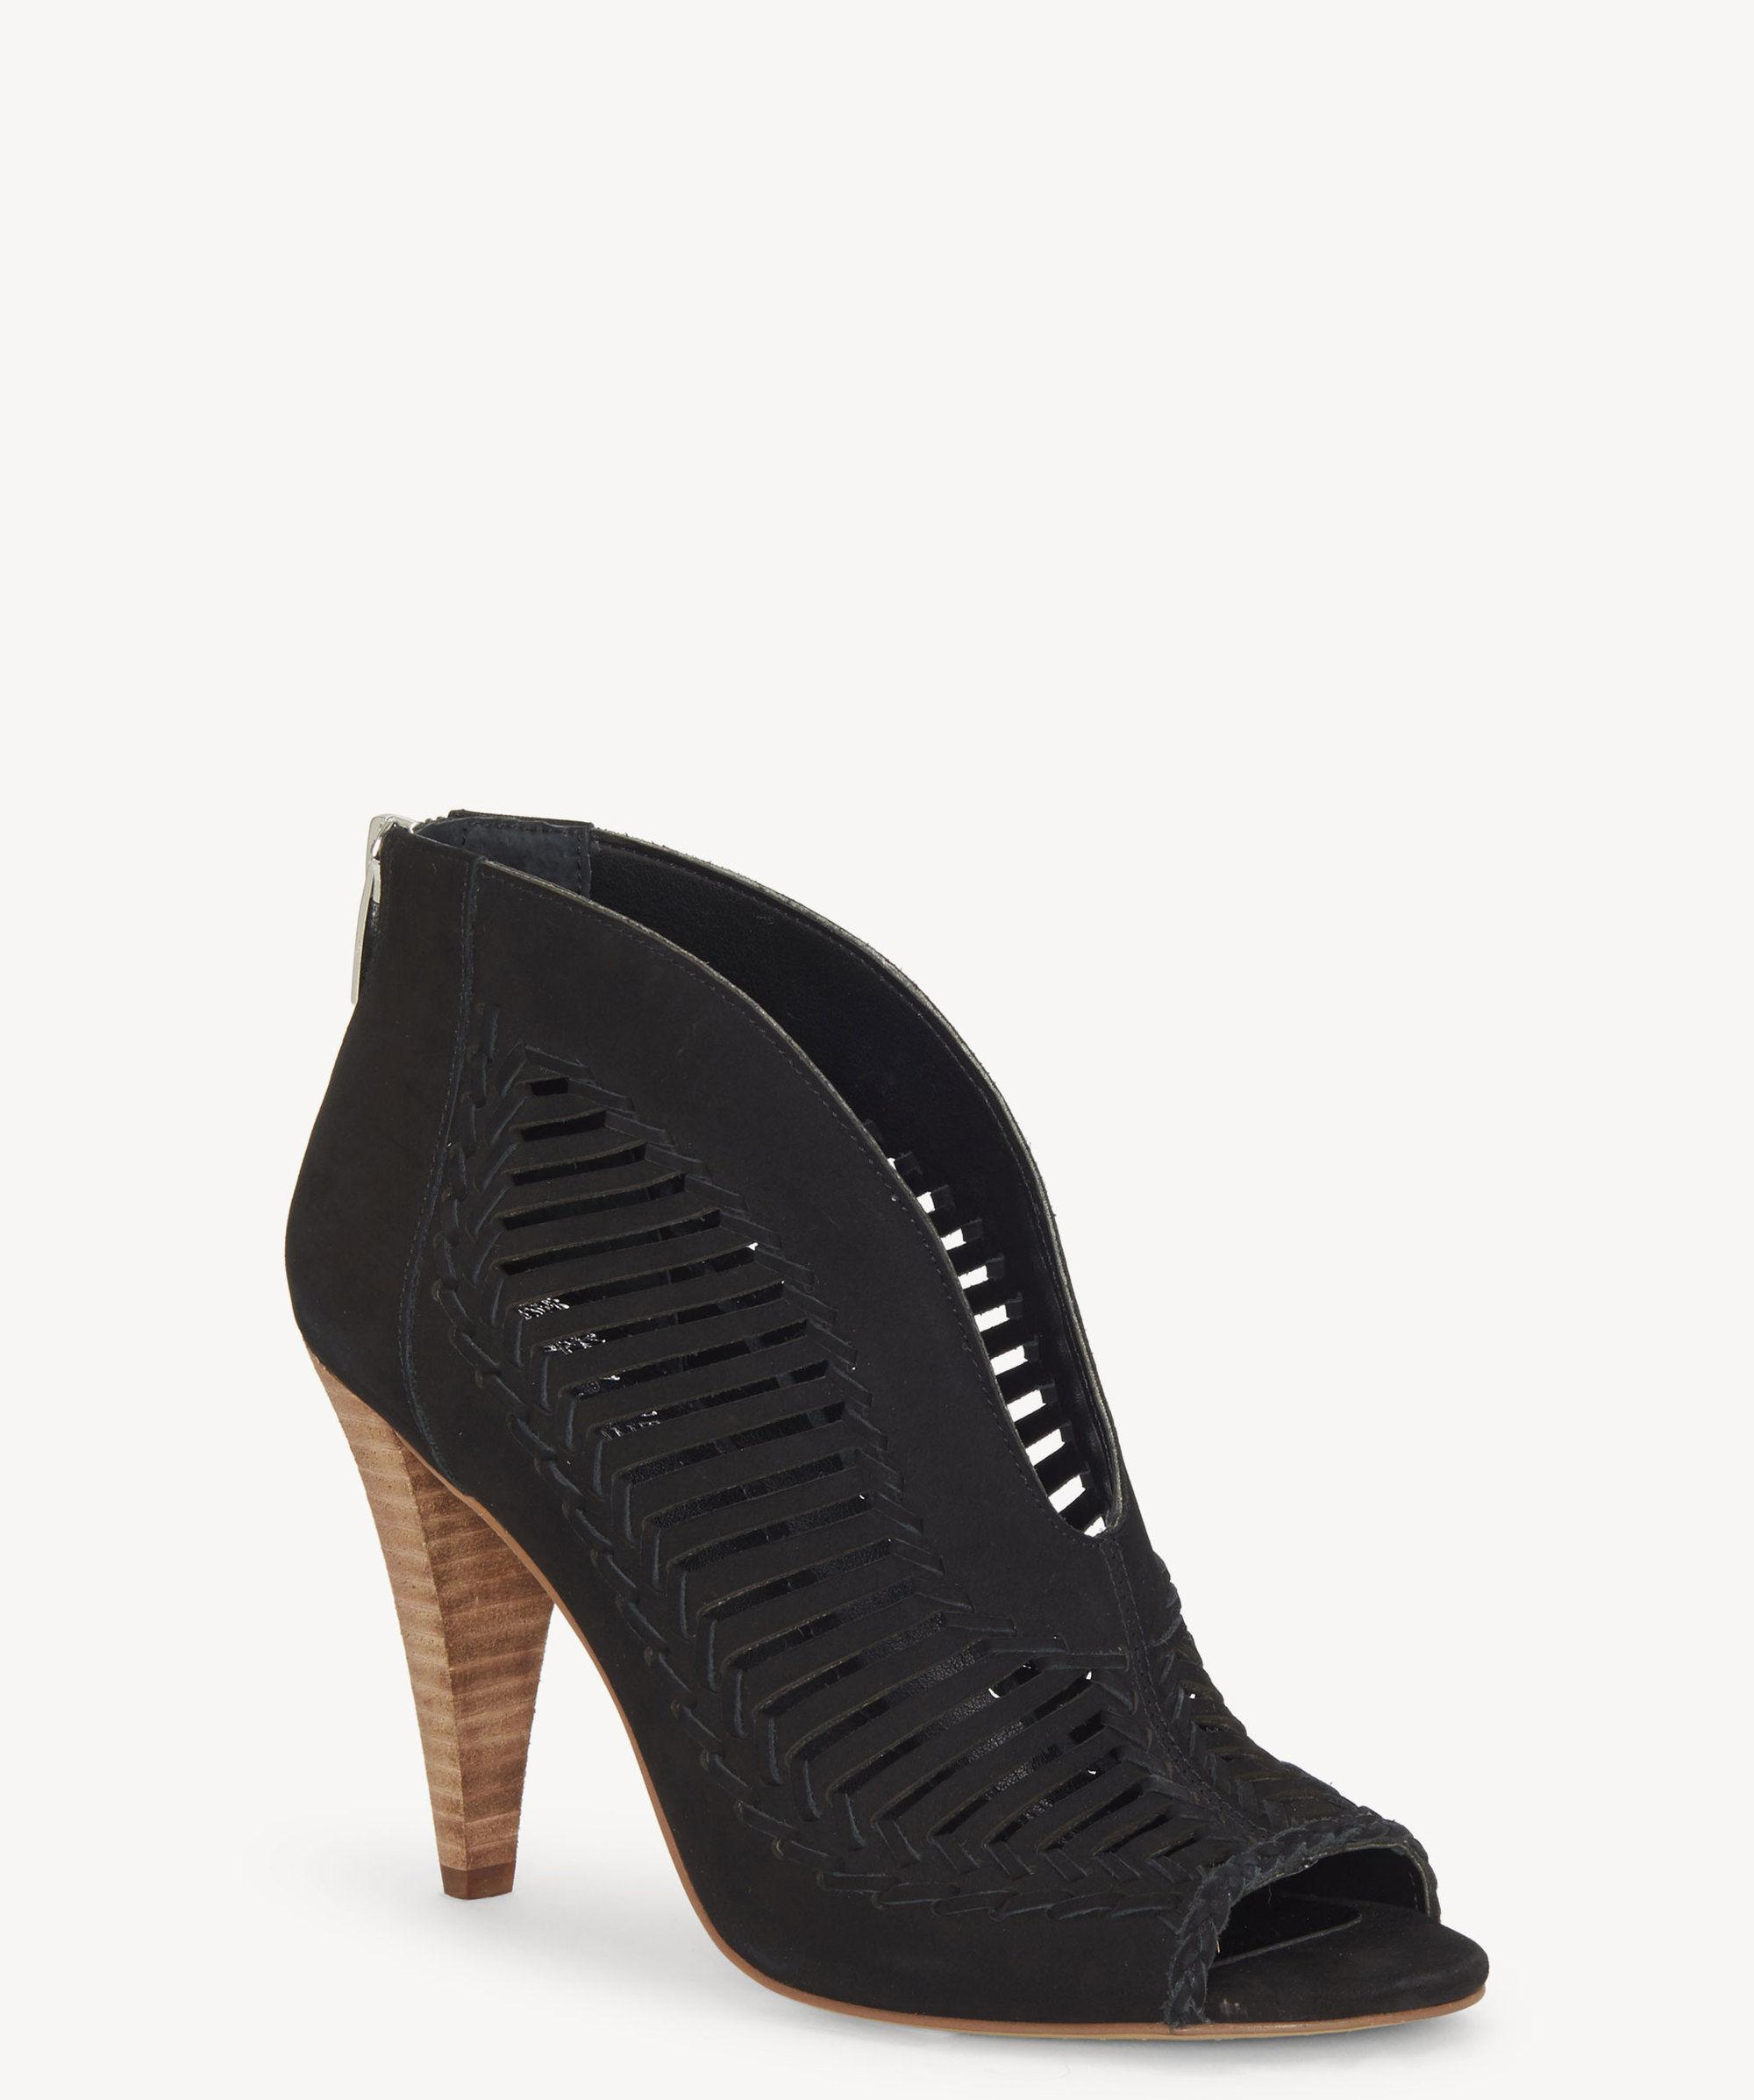 31342286473 Lyst - Vince Camuto Acha Sandal in Black